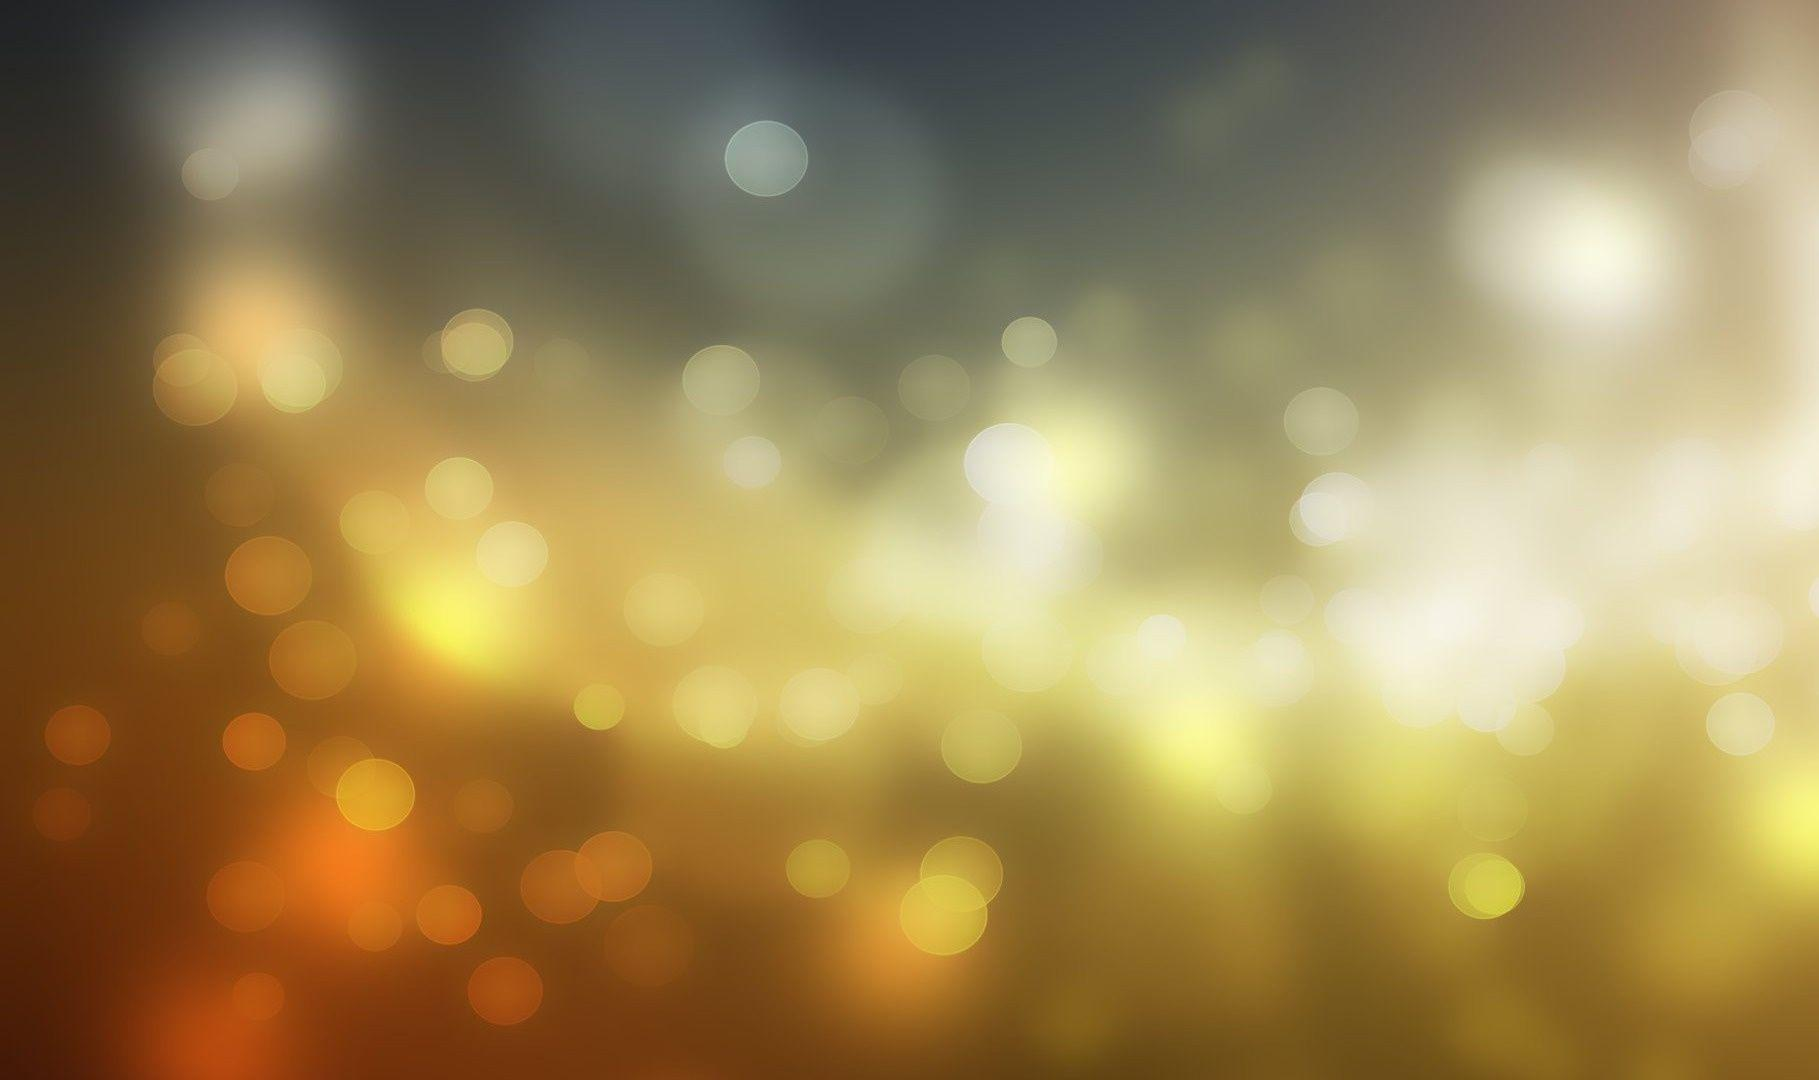 Soft Bokeh Lights Background Wallpaper and Stock Photo